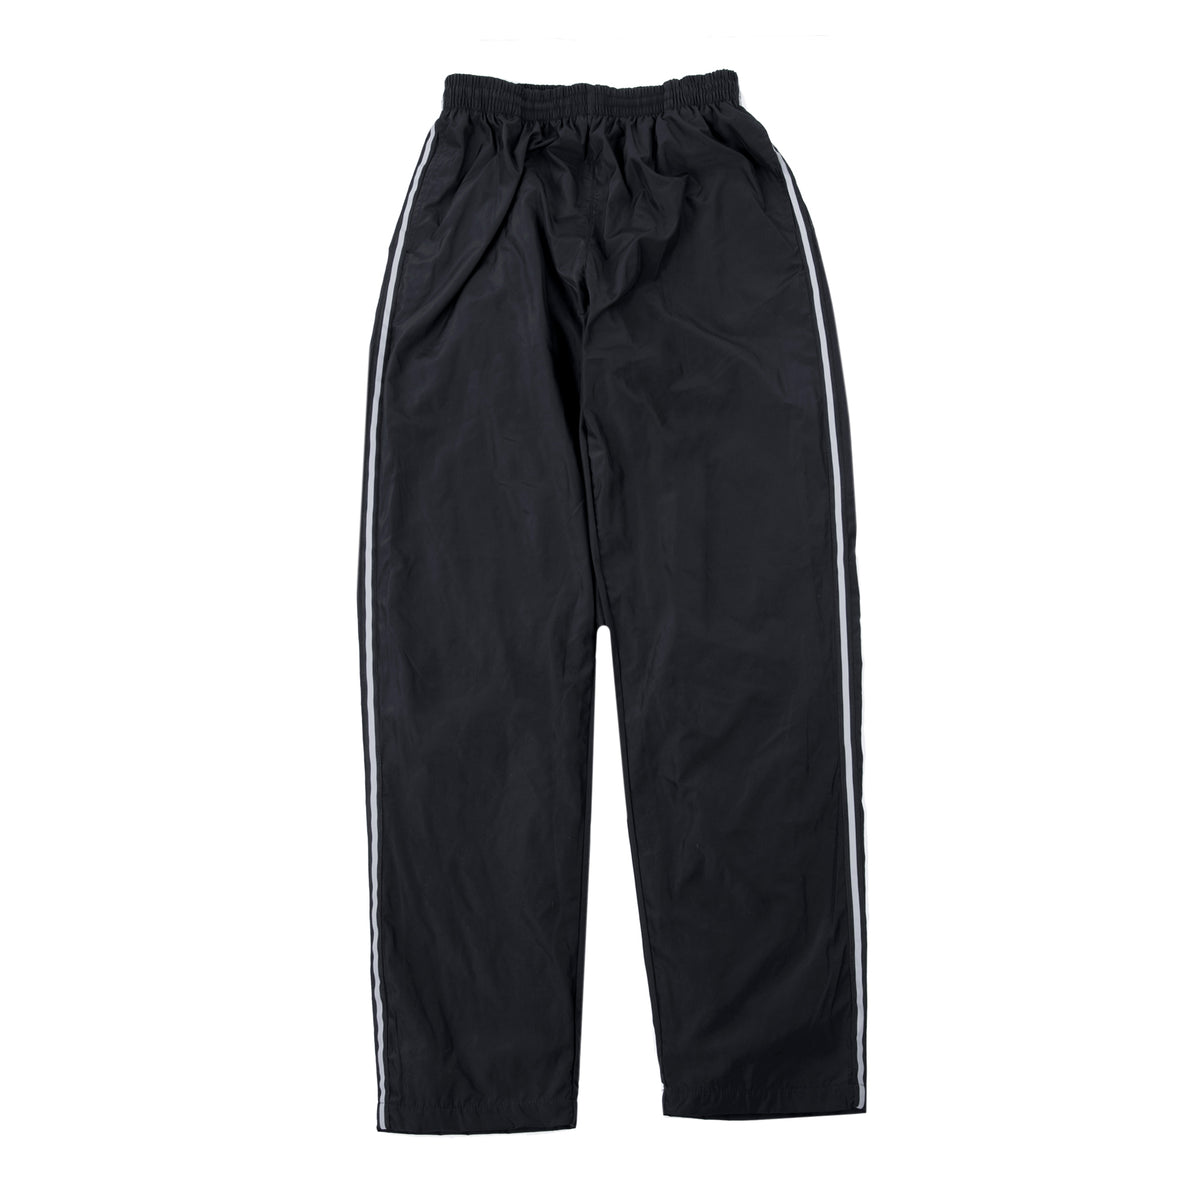 INNOVATION TRACK PANT